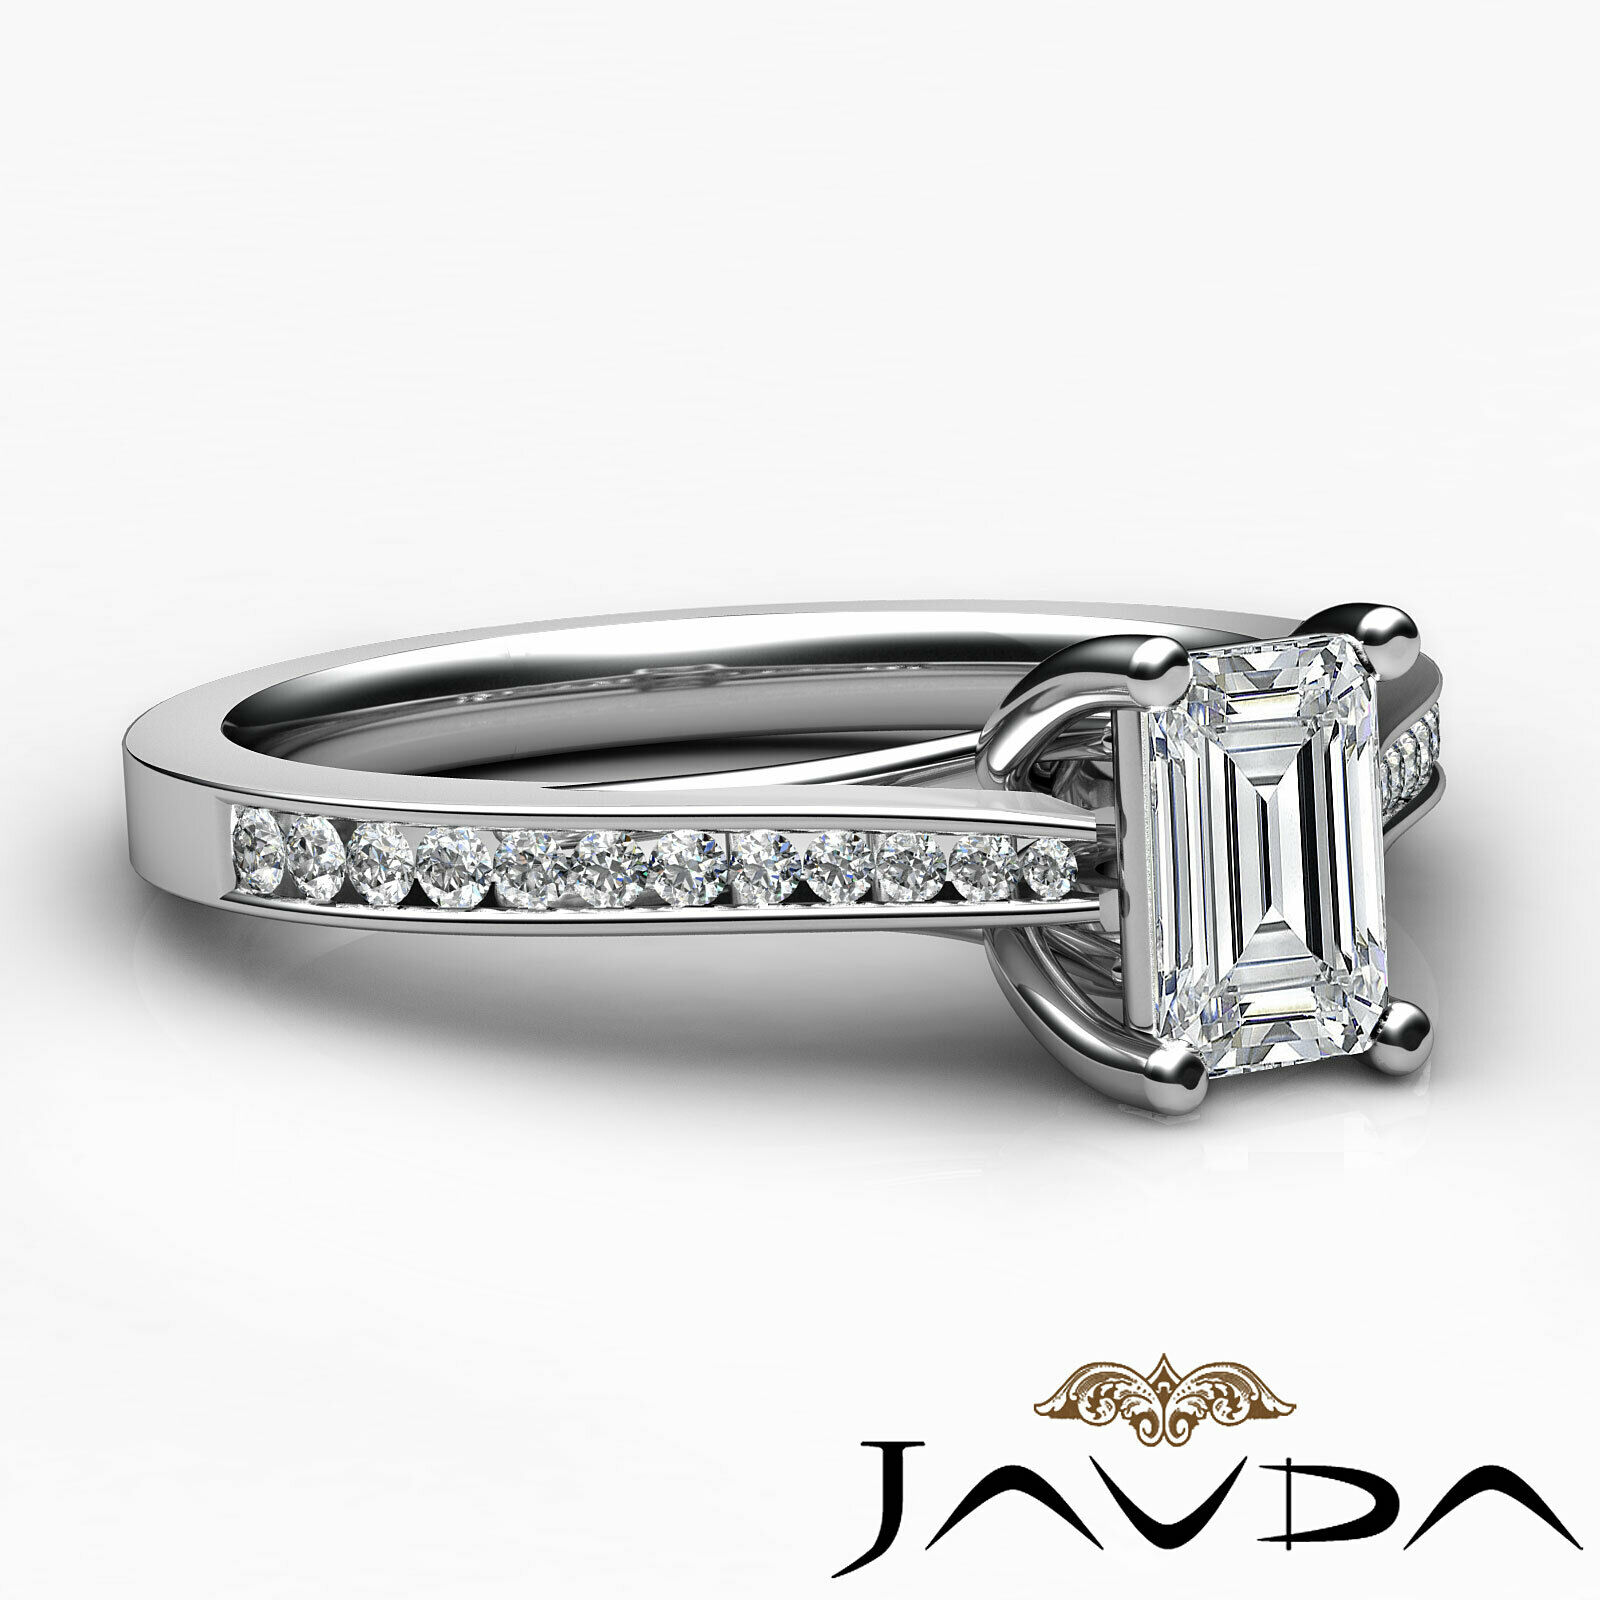 1Ctw Channel Set Emerald Diamond Engagement Her Ring Band GIA H-VVS1 White Gold 3